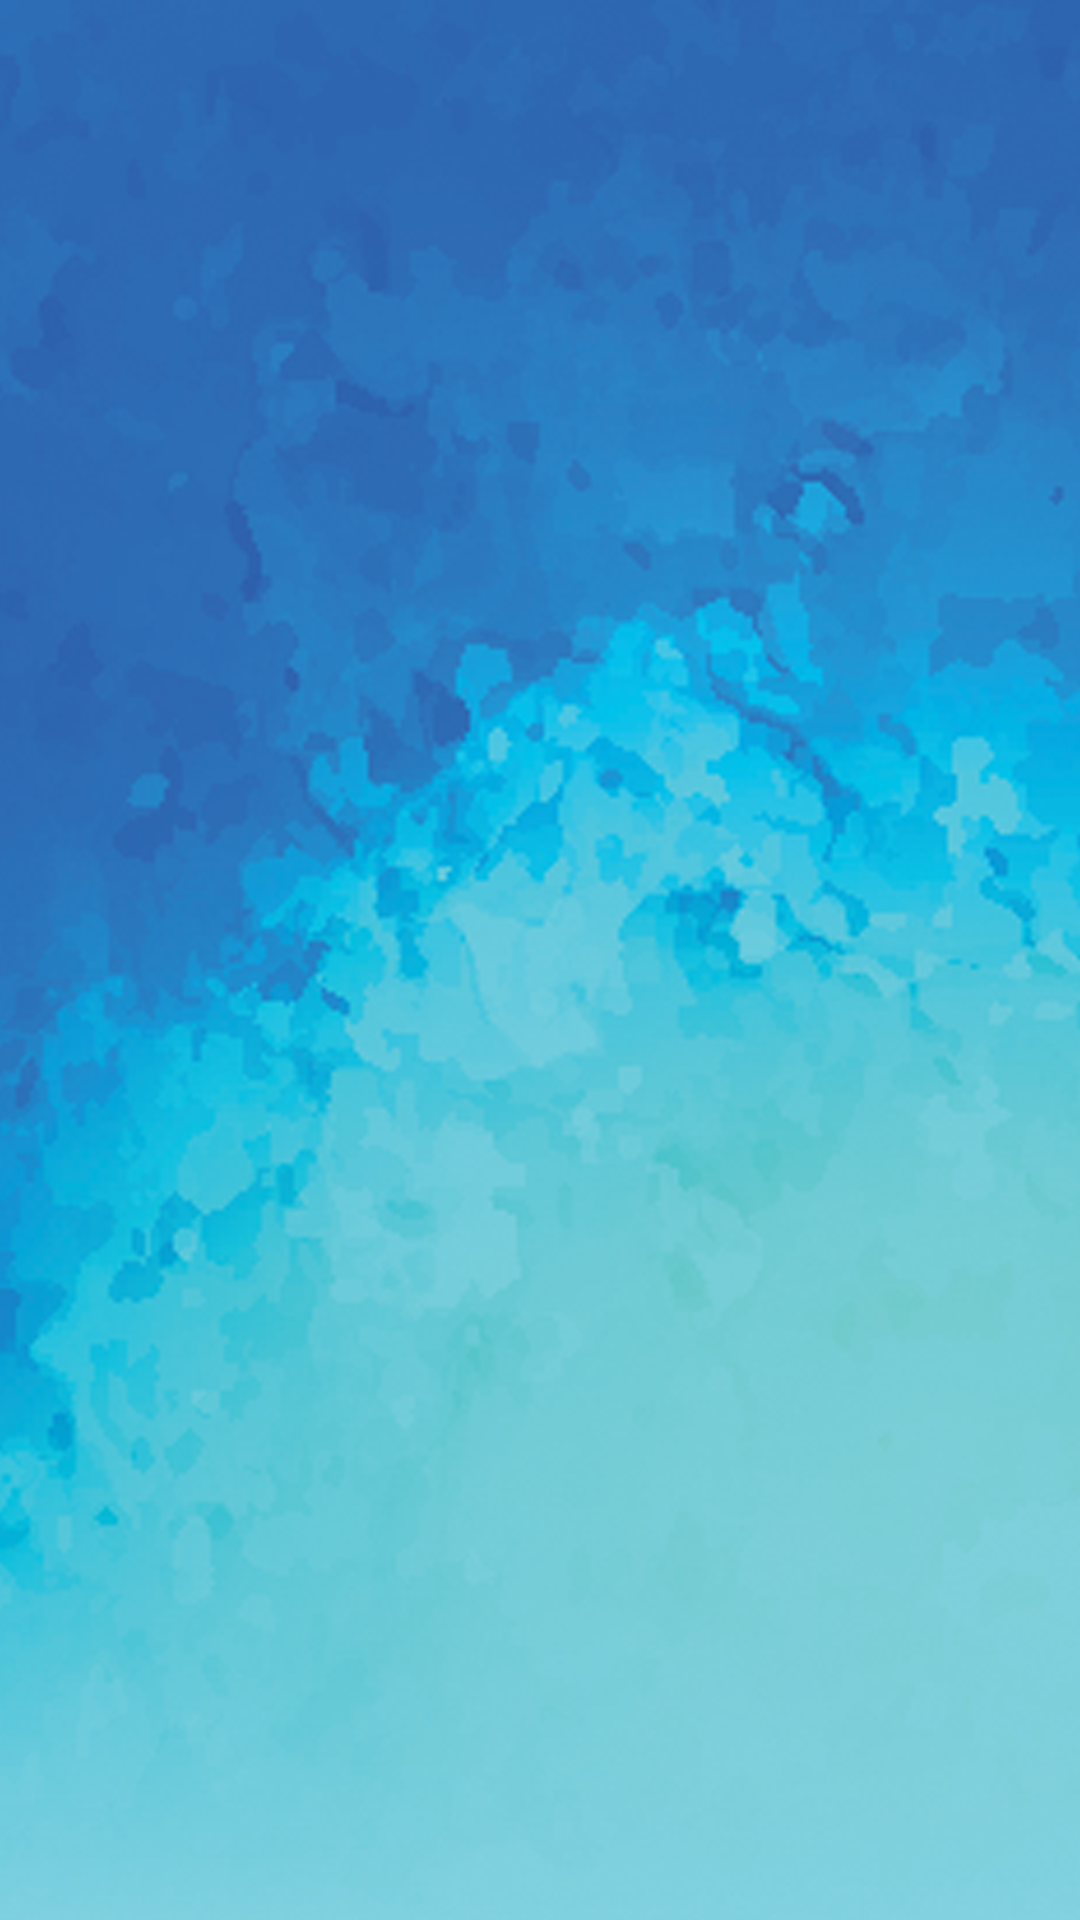 1080x1920 Free Hd Blue Watercolor Iphone Wallpaper For Download ...0046